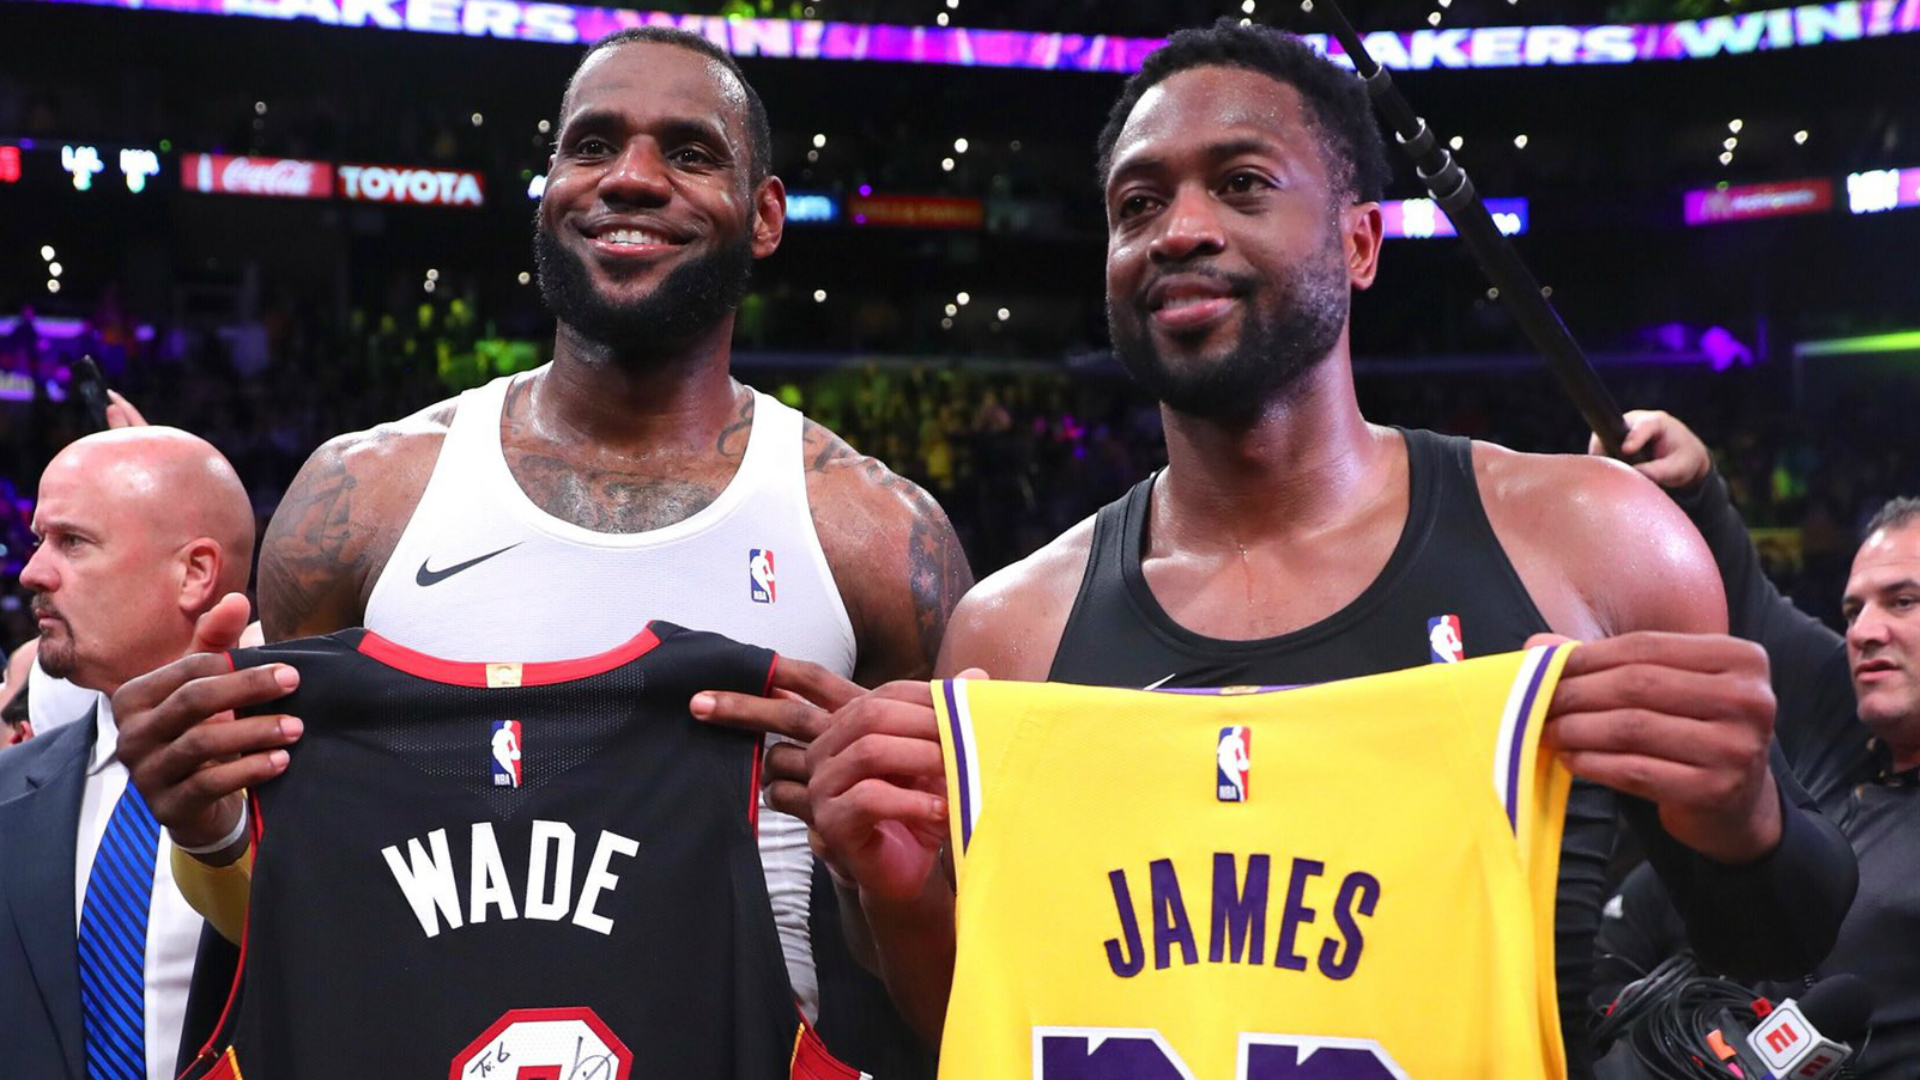 Sons of LeBron James, Dwyane Wade teaming up for school